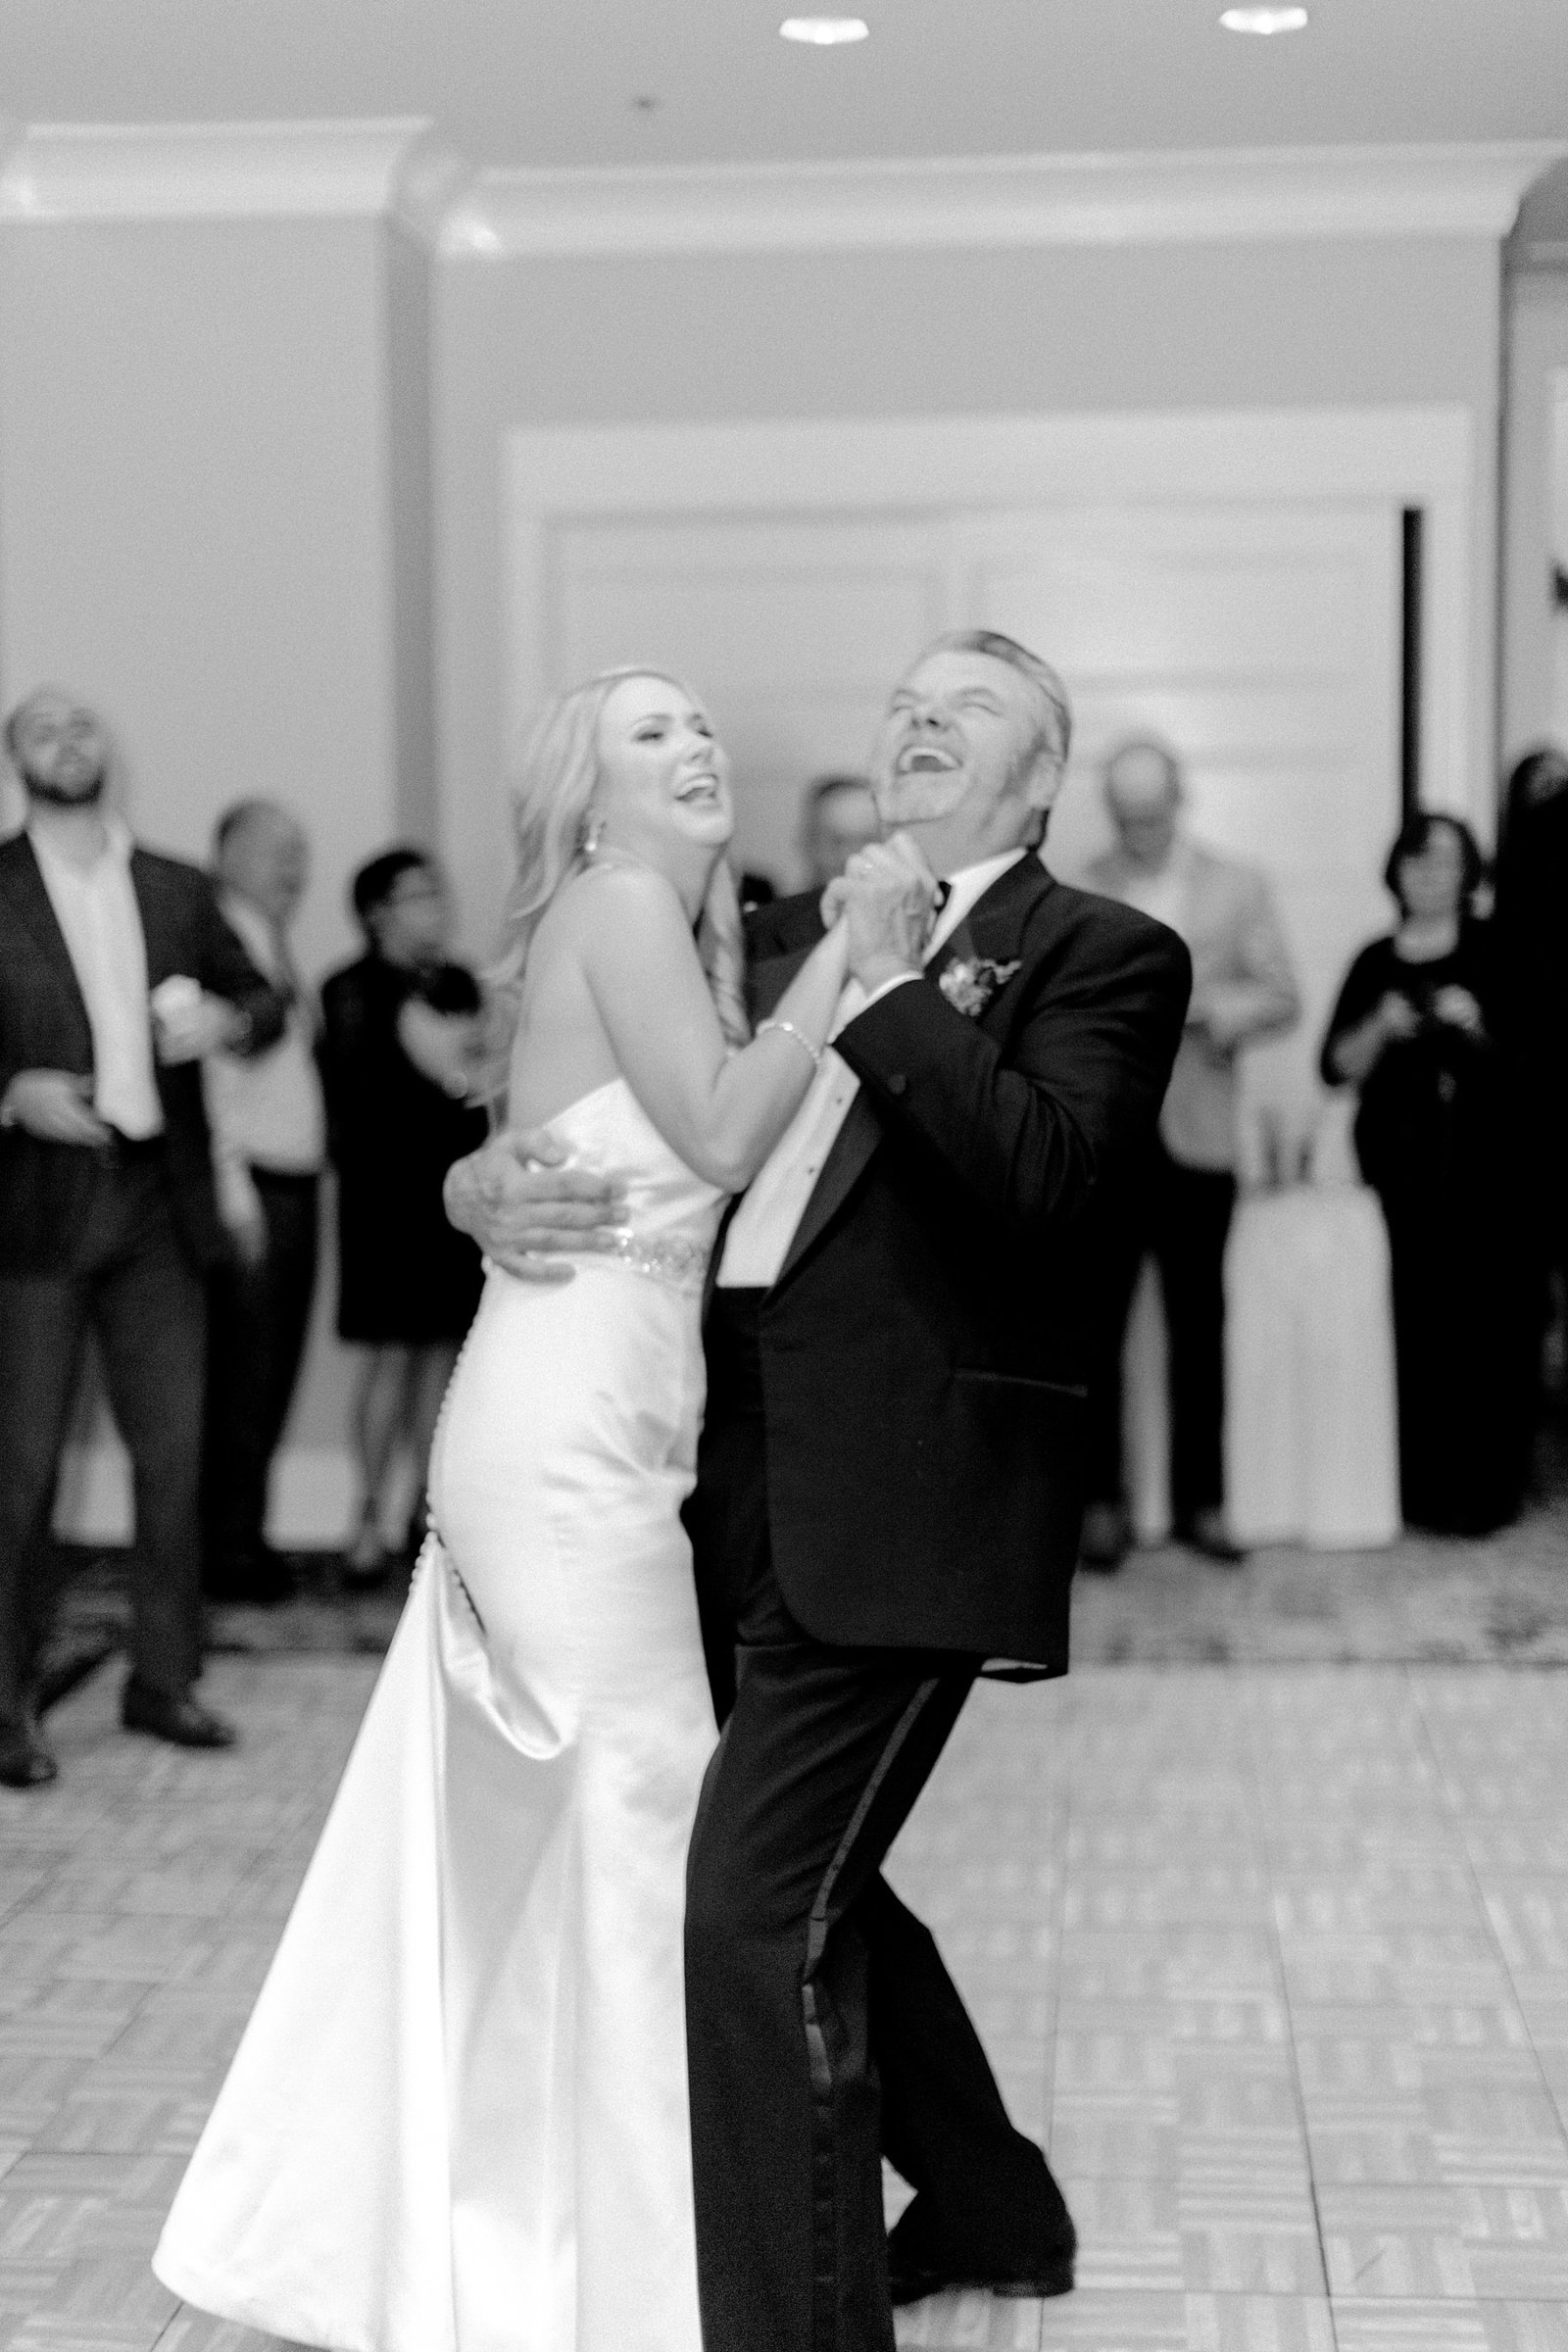 carnall_hall_wedding_fayetteville-73